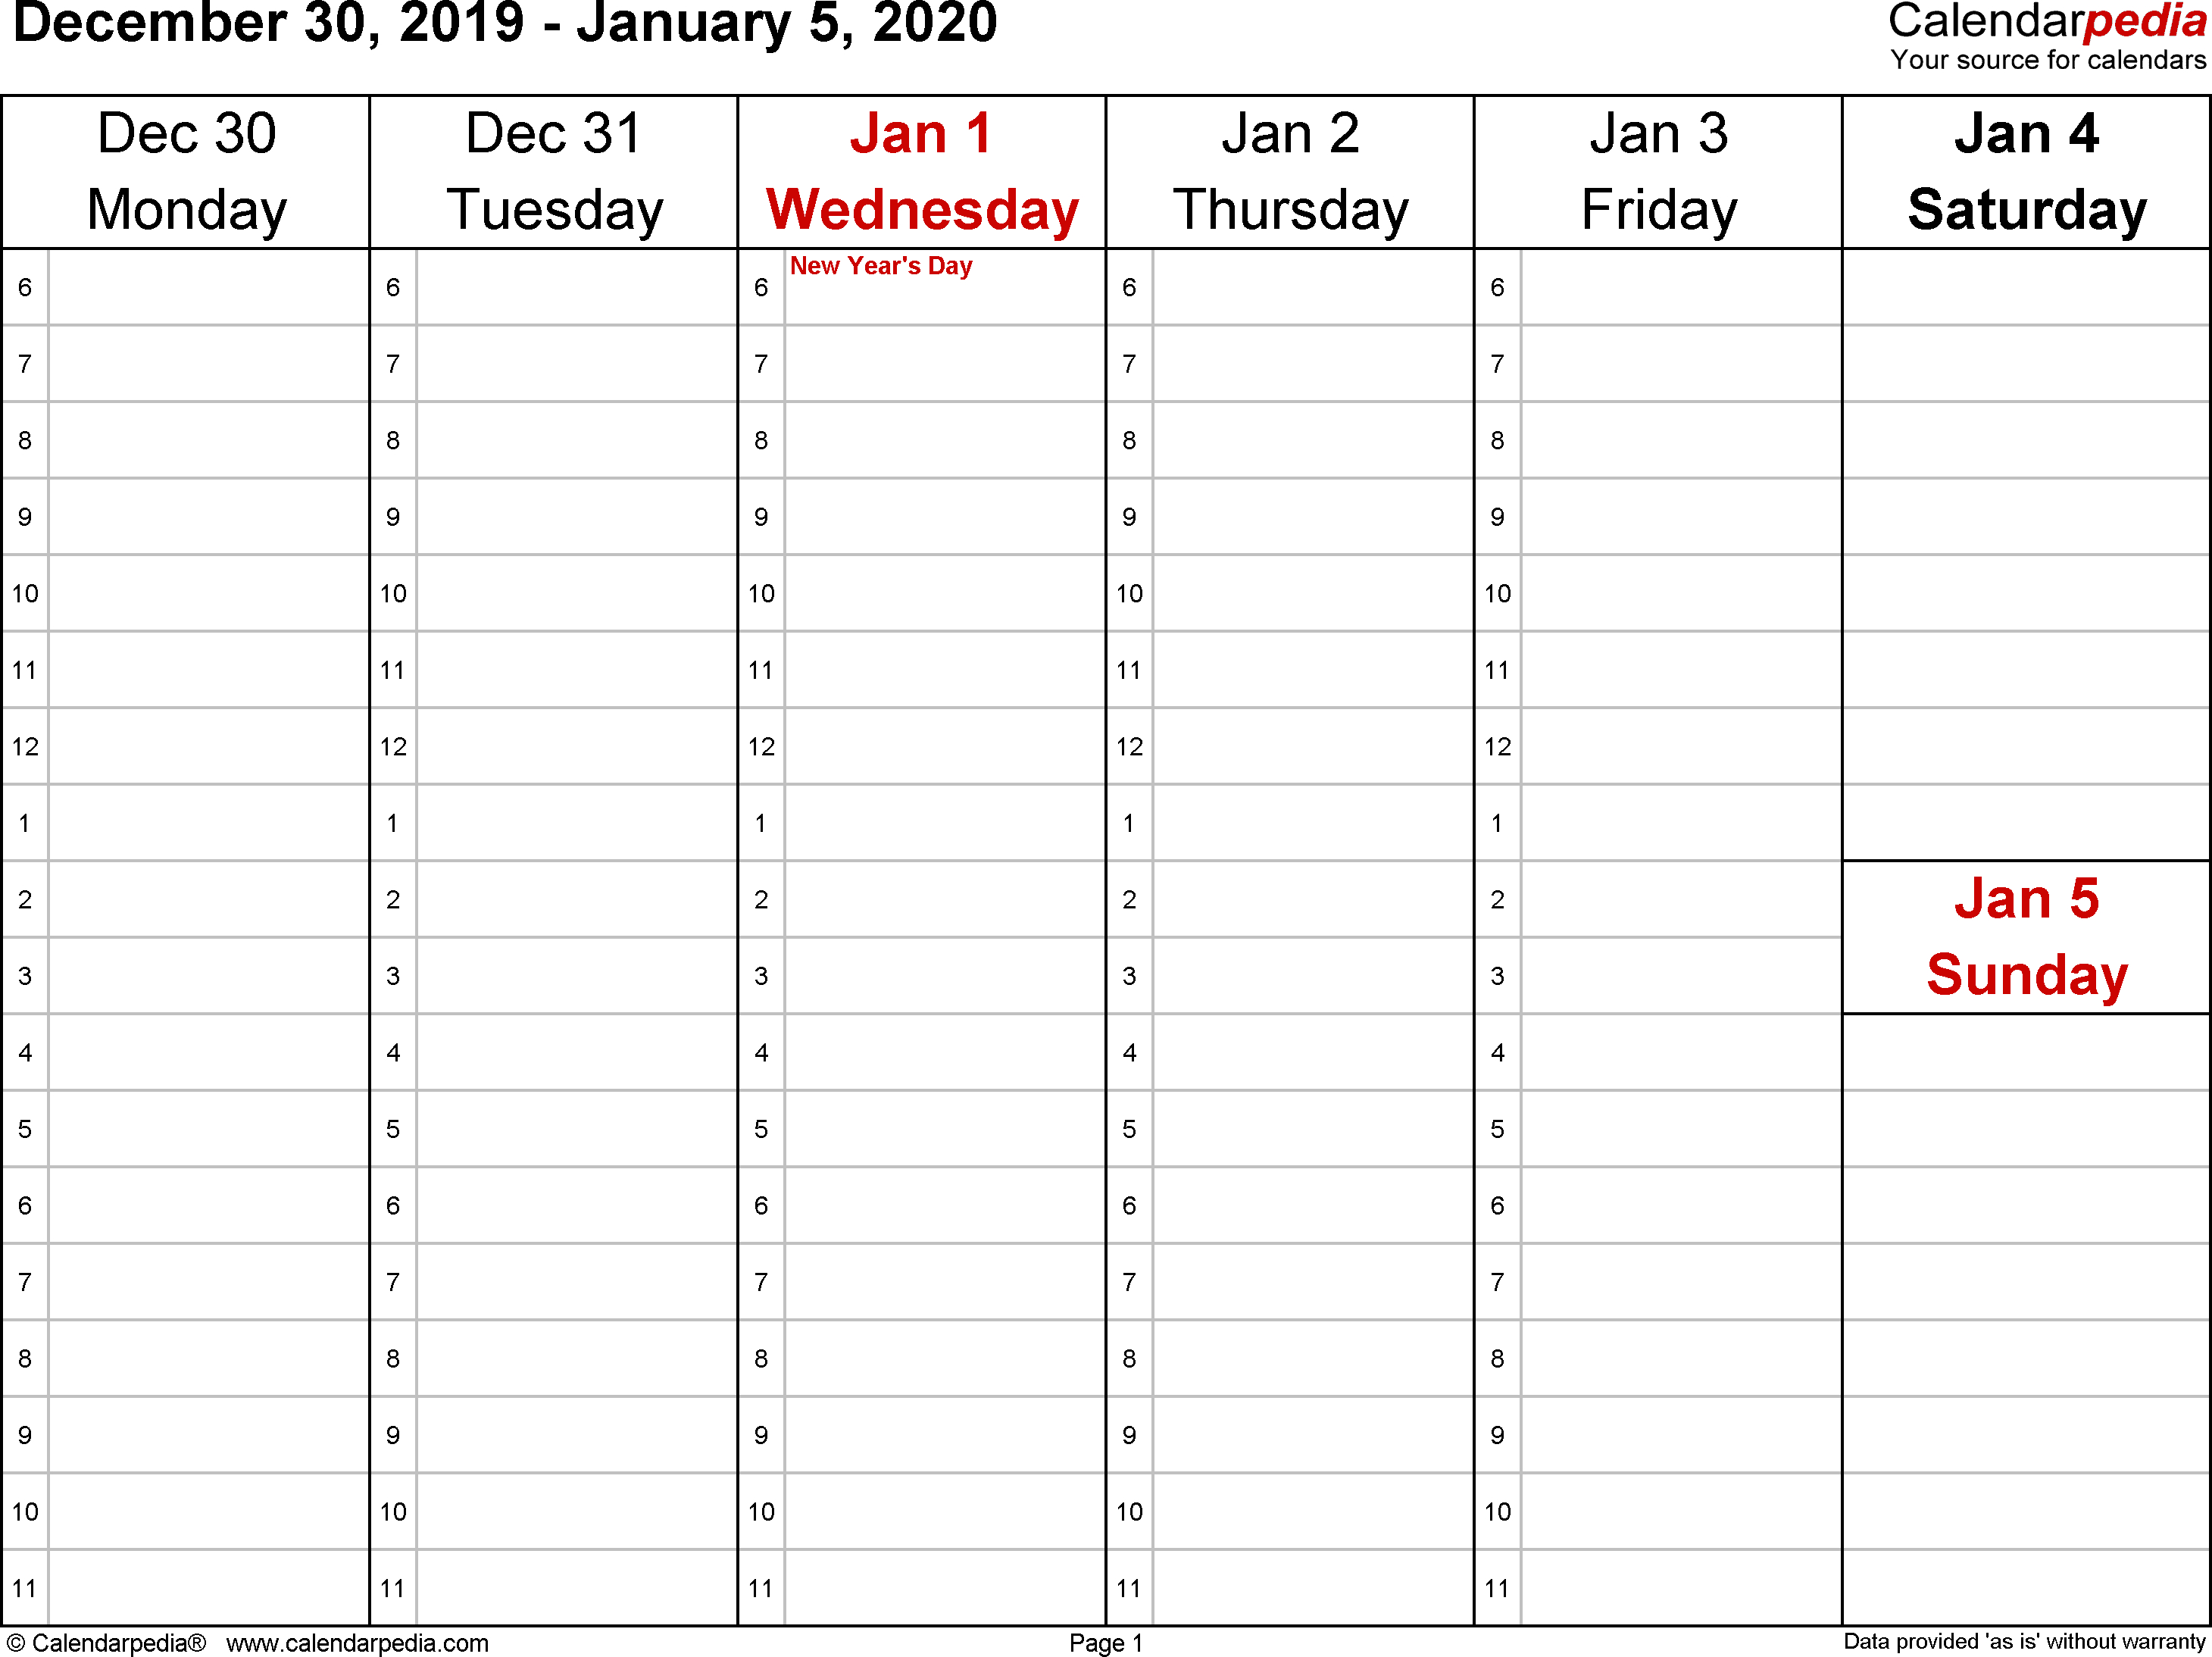 Weekly Calendar 2020 For Excel - 12 Free Printable Templates intended for October Employee Nights And Day Schedule Template